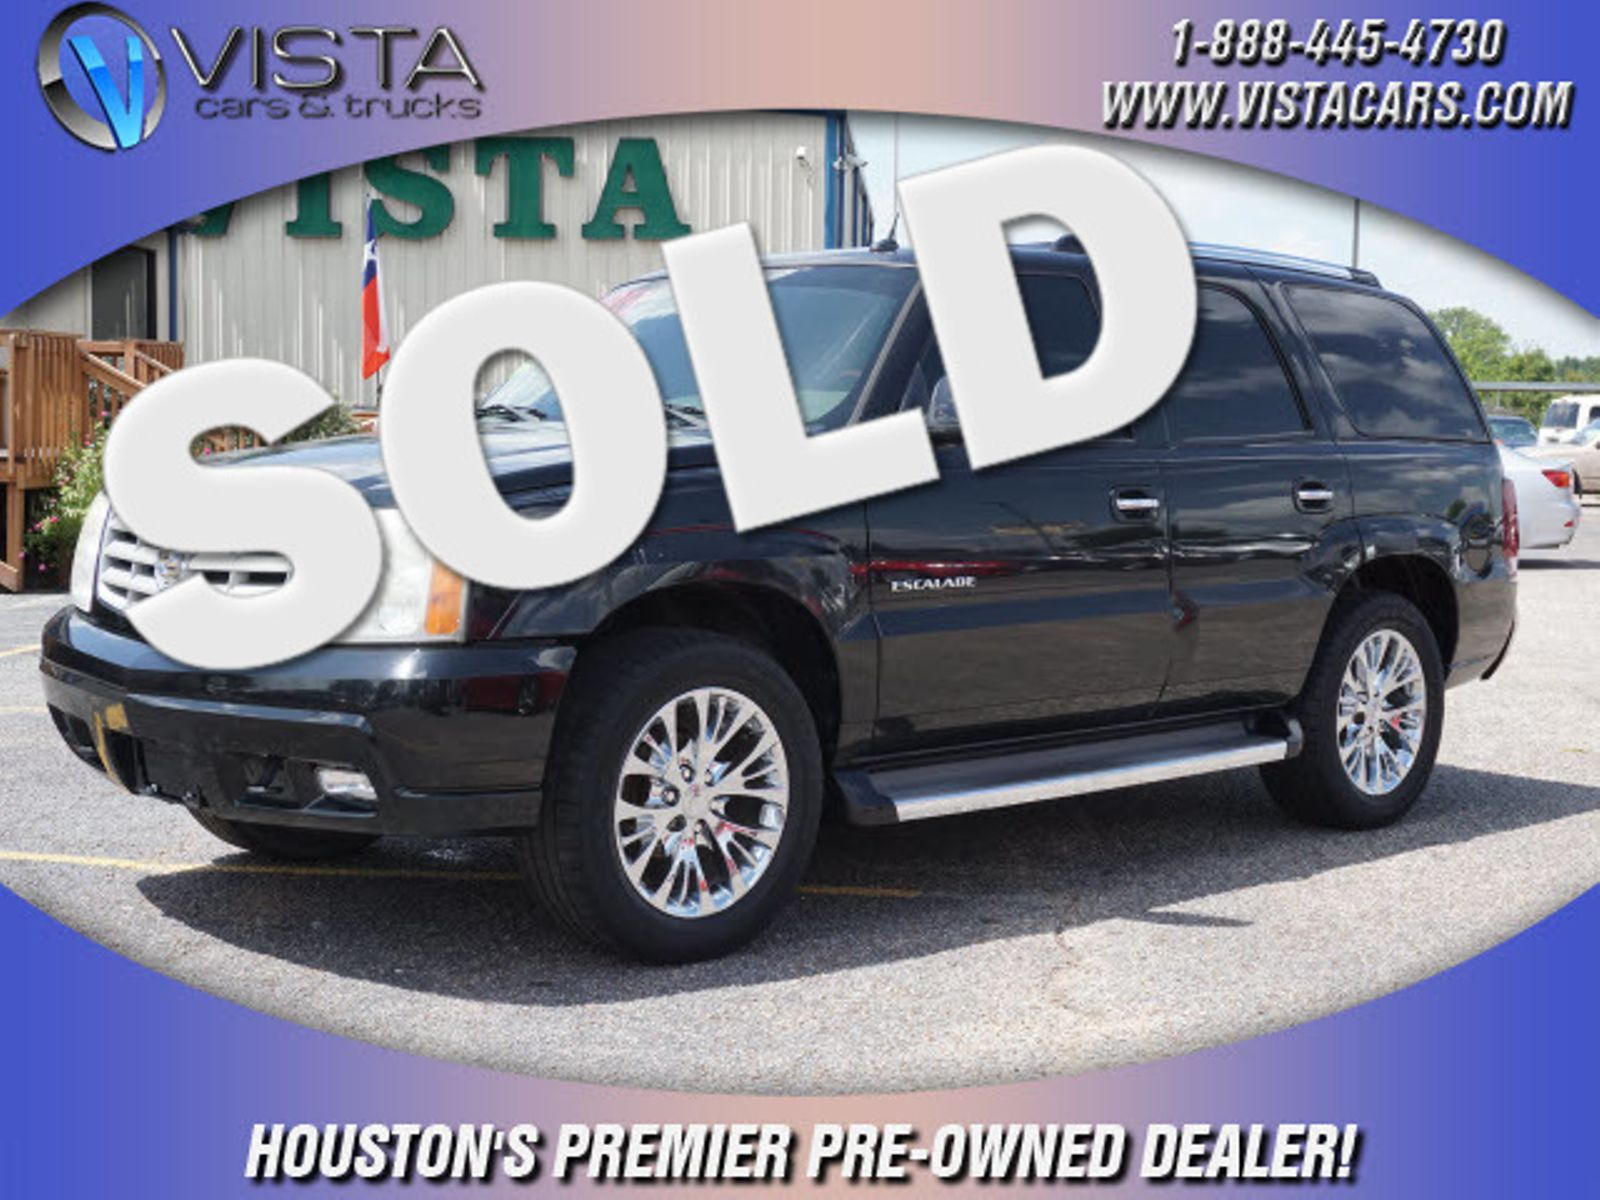 2005 Cadillac Escalade city Texas Vista Cars and Trucks in Houston, Texas  ...